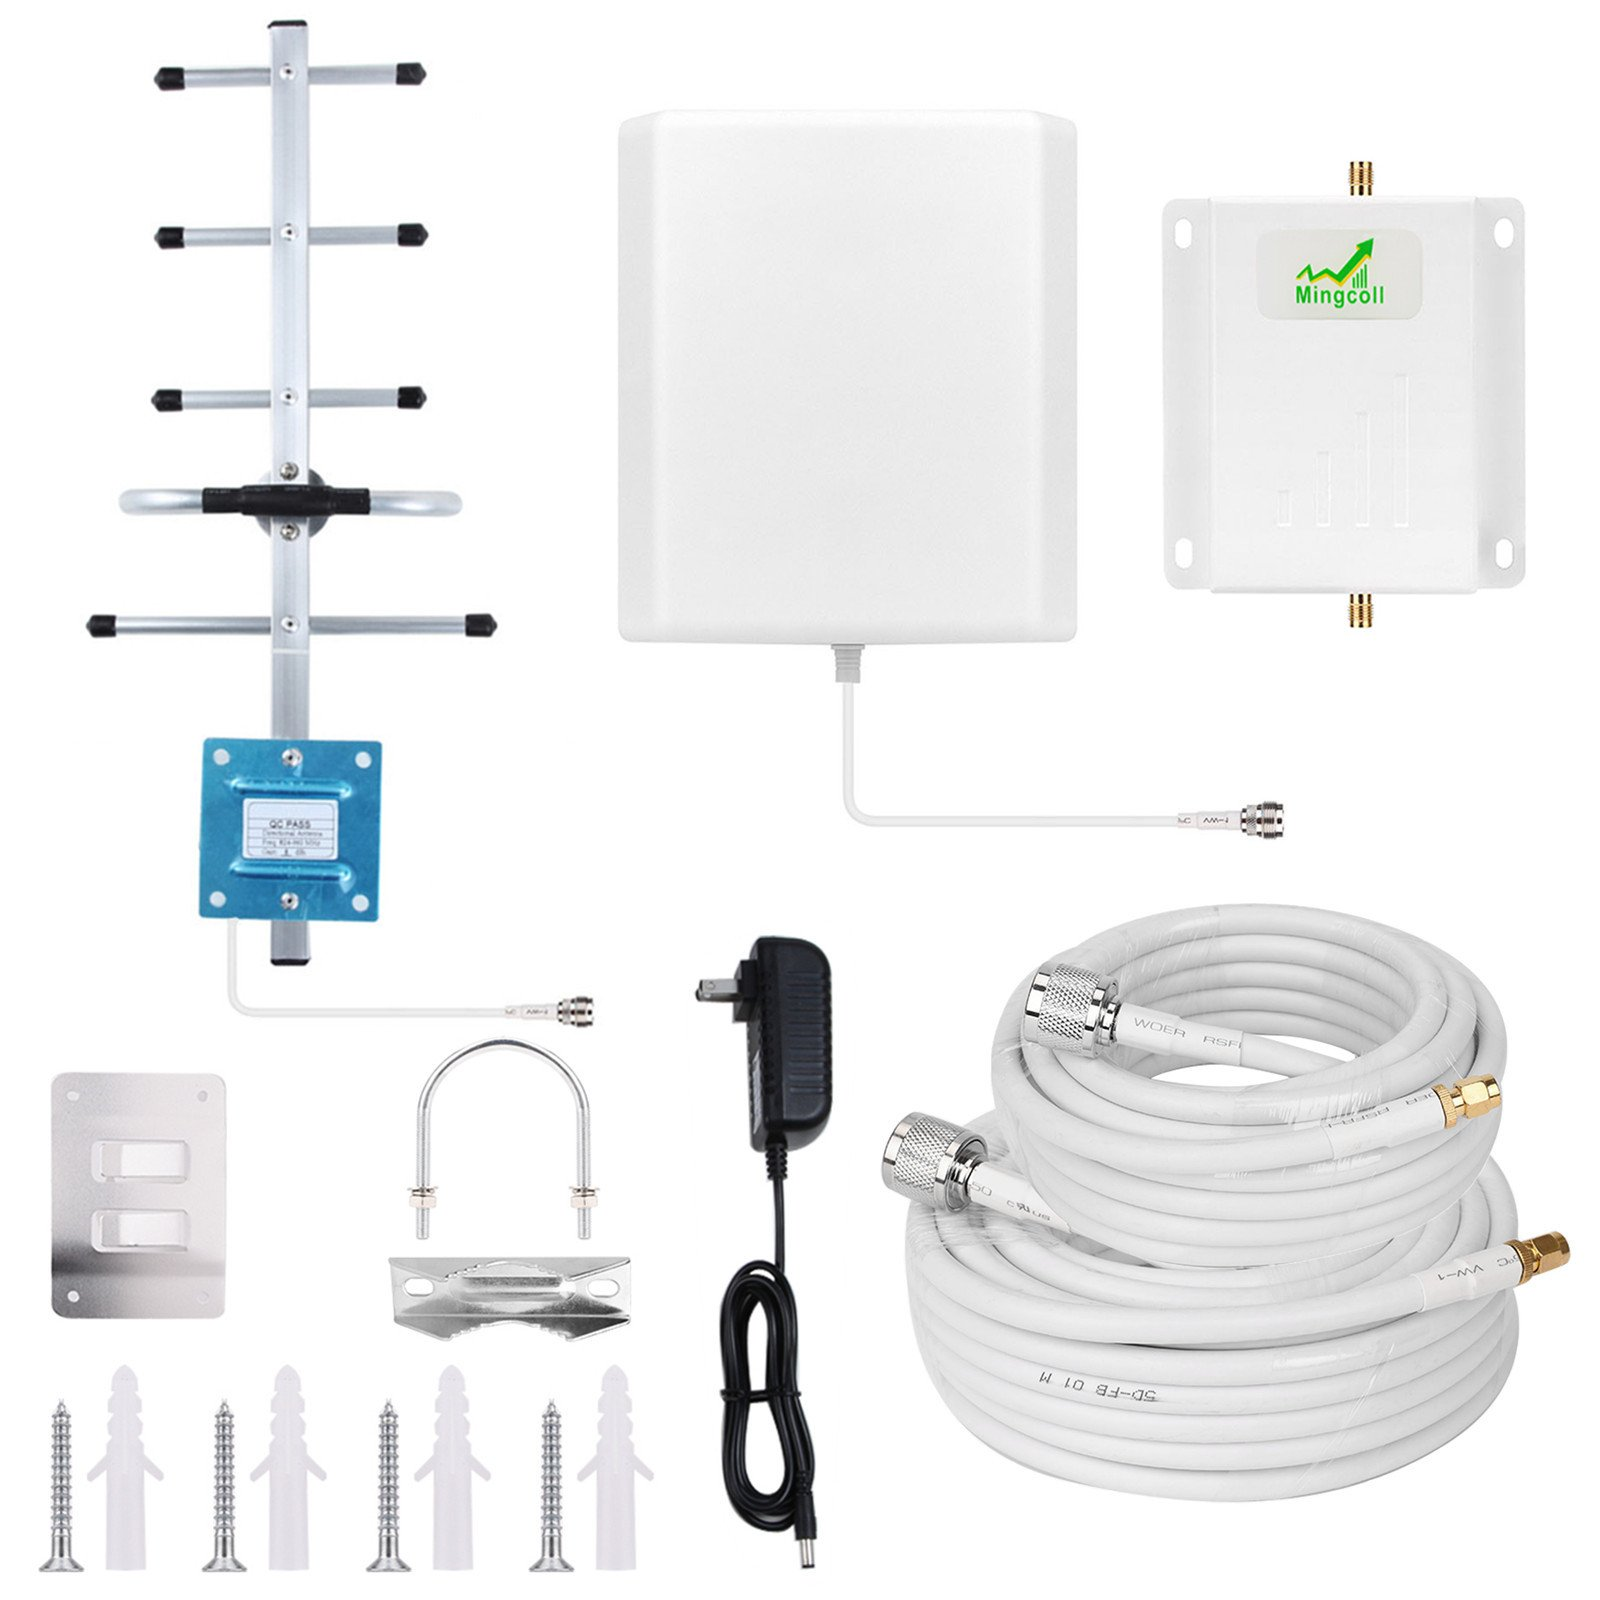 Boost GSM 3G 4G LTE Voice /& Data for Verizon AT/&T T-Mobile Mingcoll Cell Phone Signal Booster Amplifier for Home and Office Dual Band 850// 1700MHz Band 5 Band 4 Cellular Booster Repeater Kits